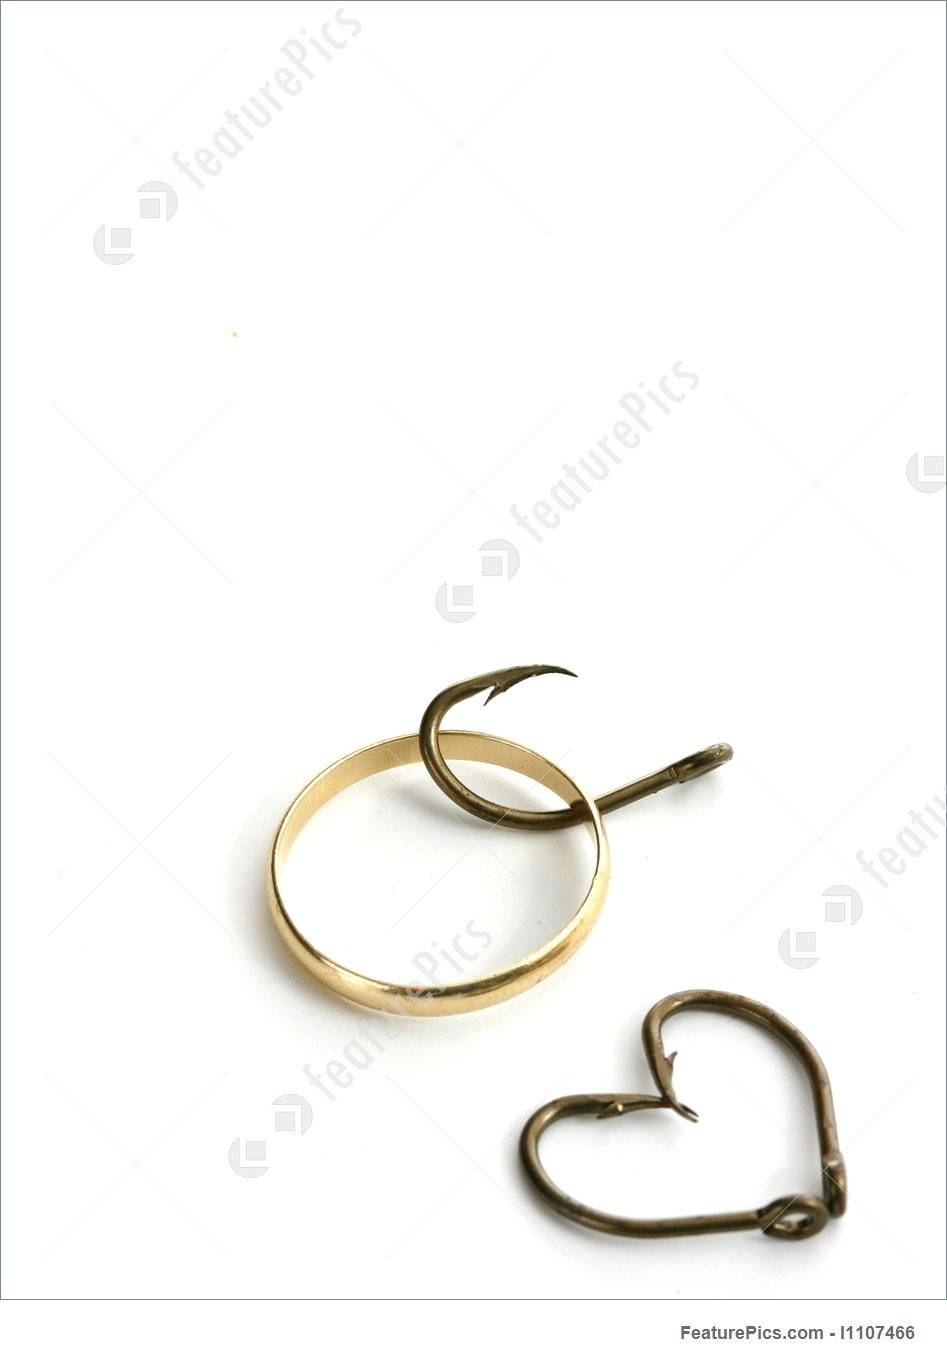 Fish Hooks Formed As A Heart And Wedding Ring Stock Photo I1107466 With Fish Hook Wedding Rings (View 6 of 15)